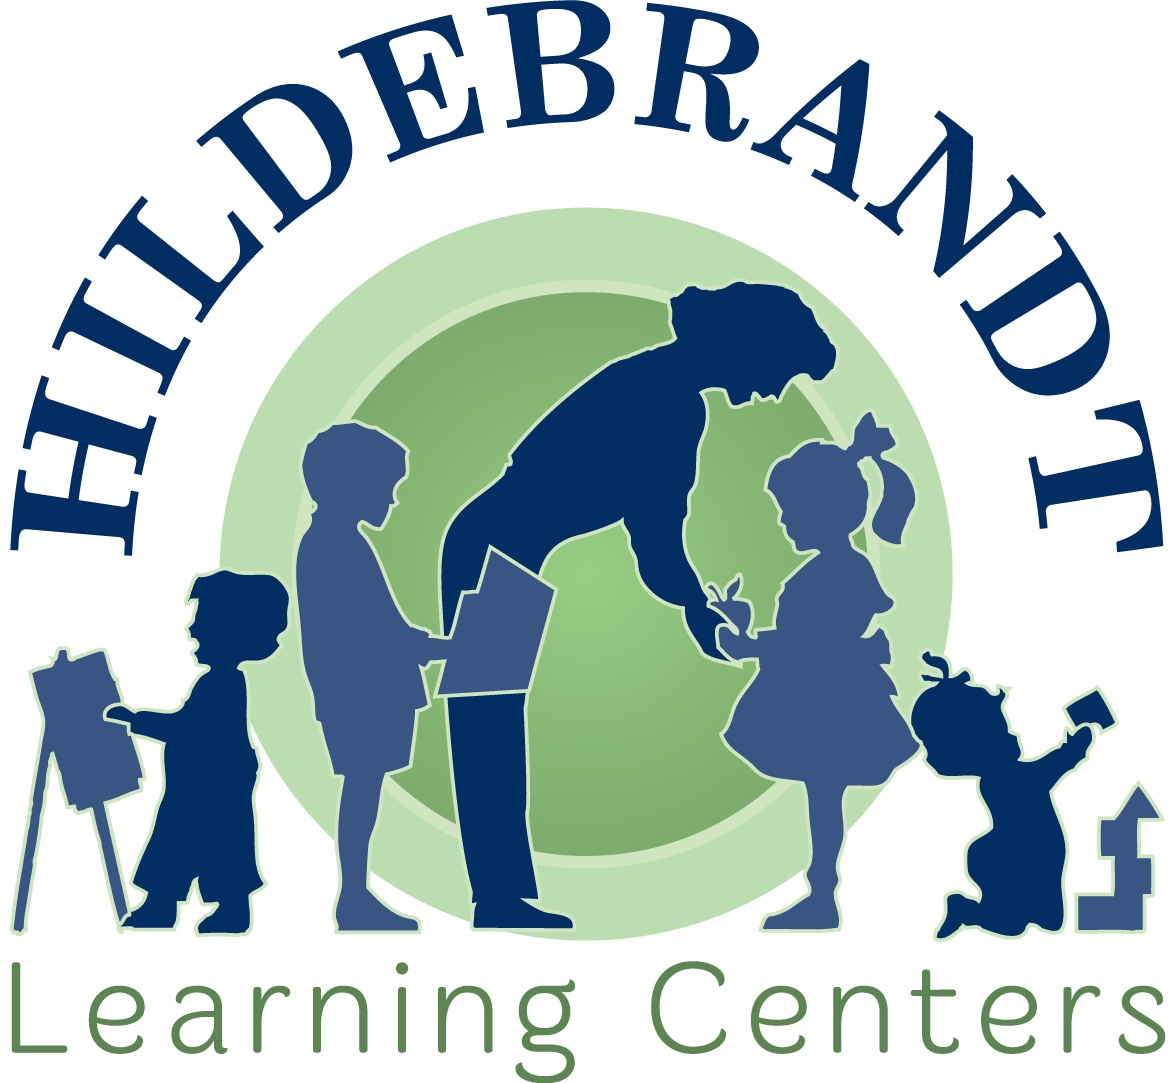 Hildebrandt learning center